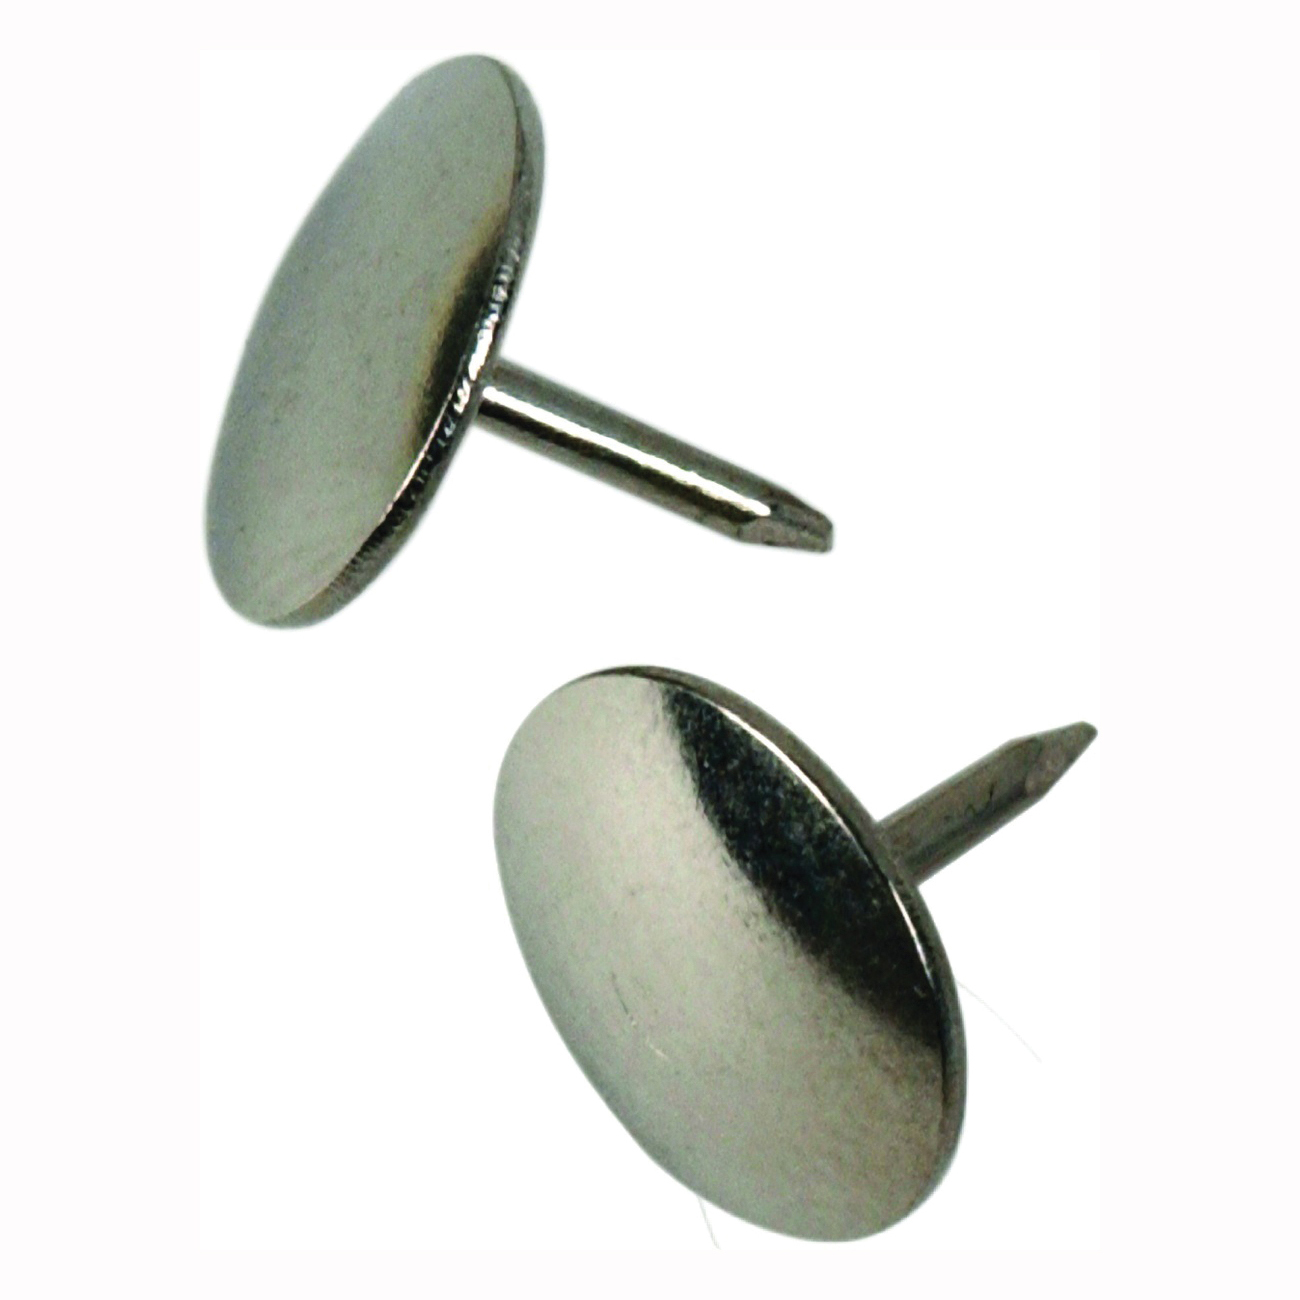 Picture of HILLMAN 122670 Thumb Tack, 15/64 in Shank, Steel, Nickel, Cap Head, Sharp Point, Snap-Pak